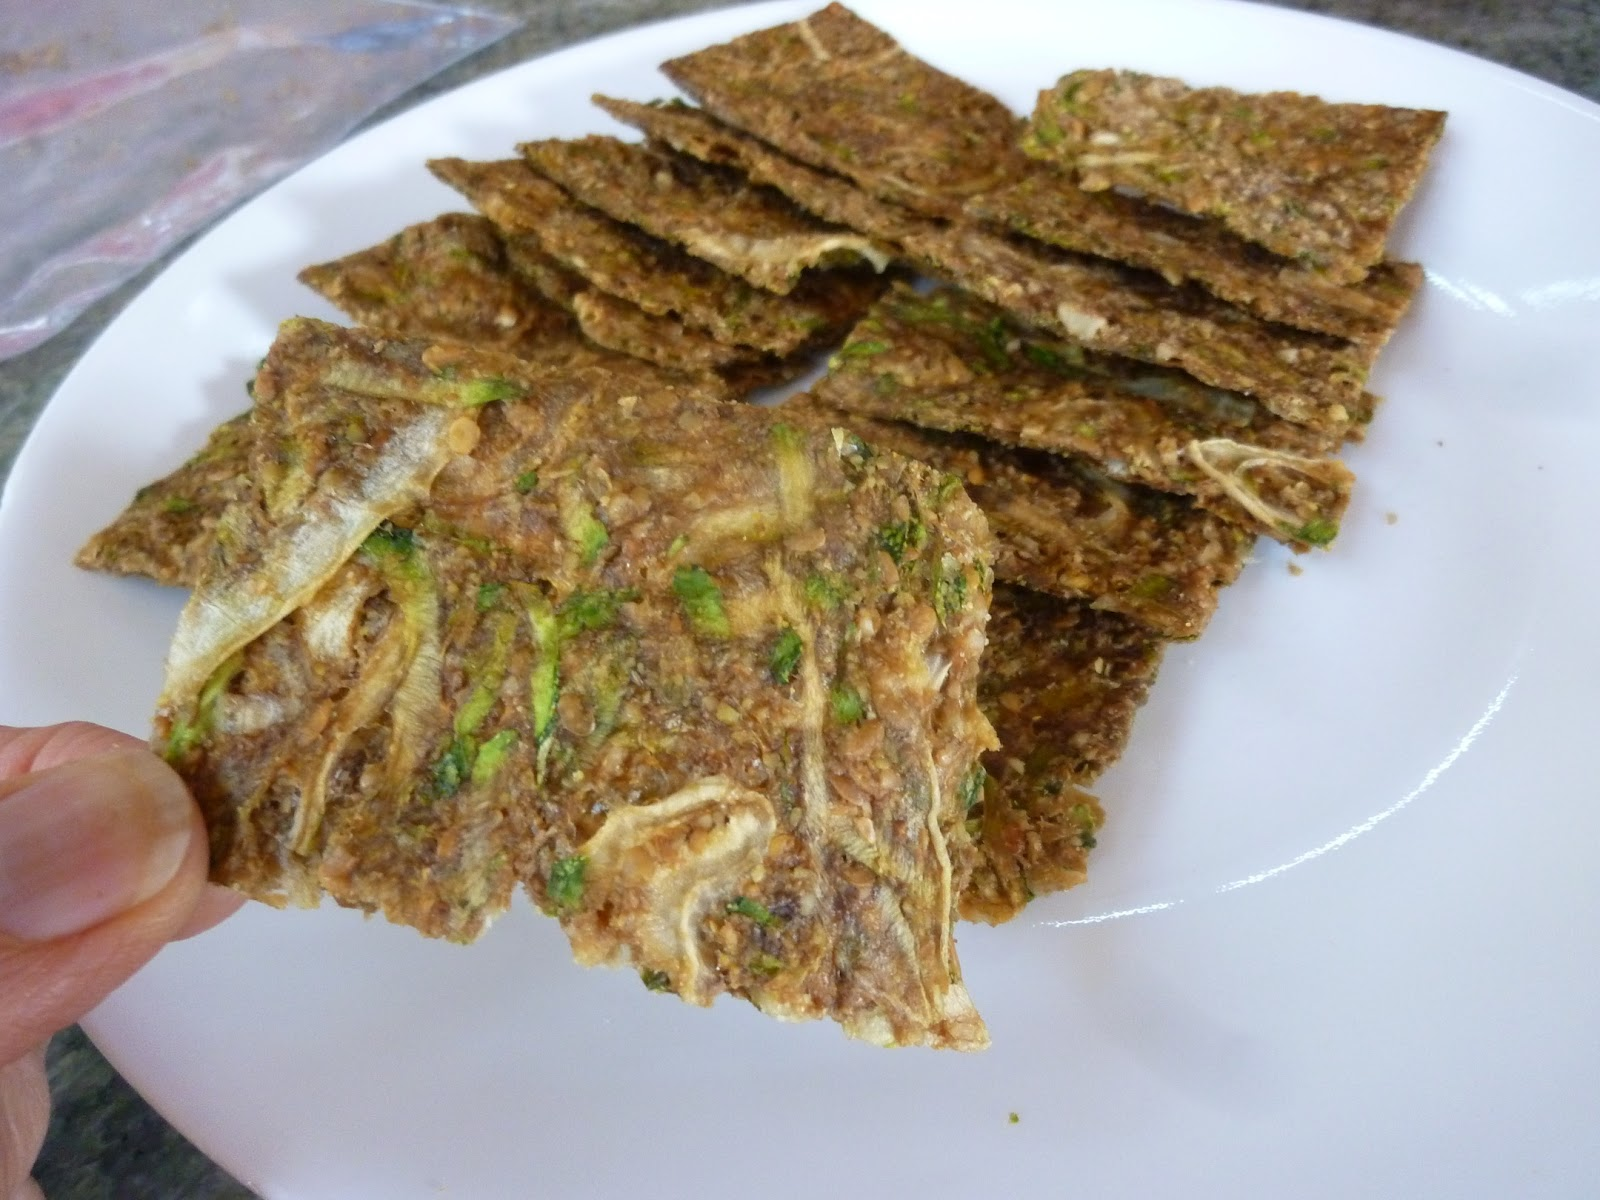 Foods for long life crispy raw vegan and gluten free zucchini onion crispy raw vegan and gluten free zucchini onion crackers high in omega 3 fatty acid forumfinder Images